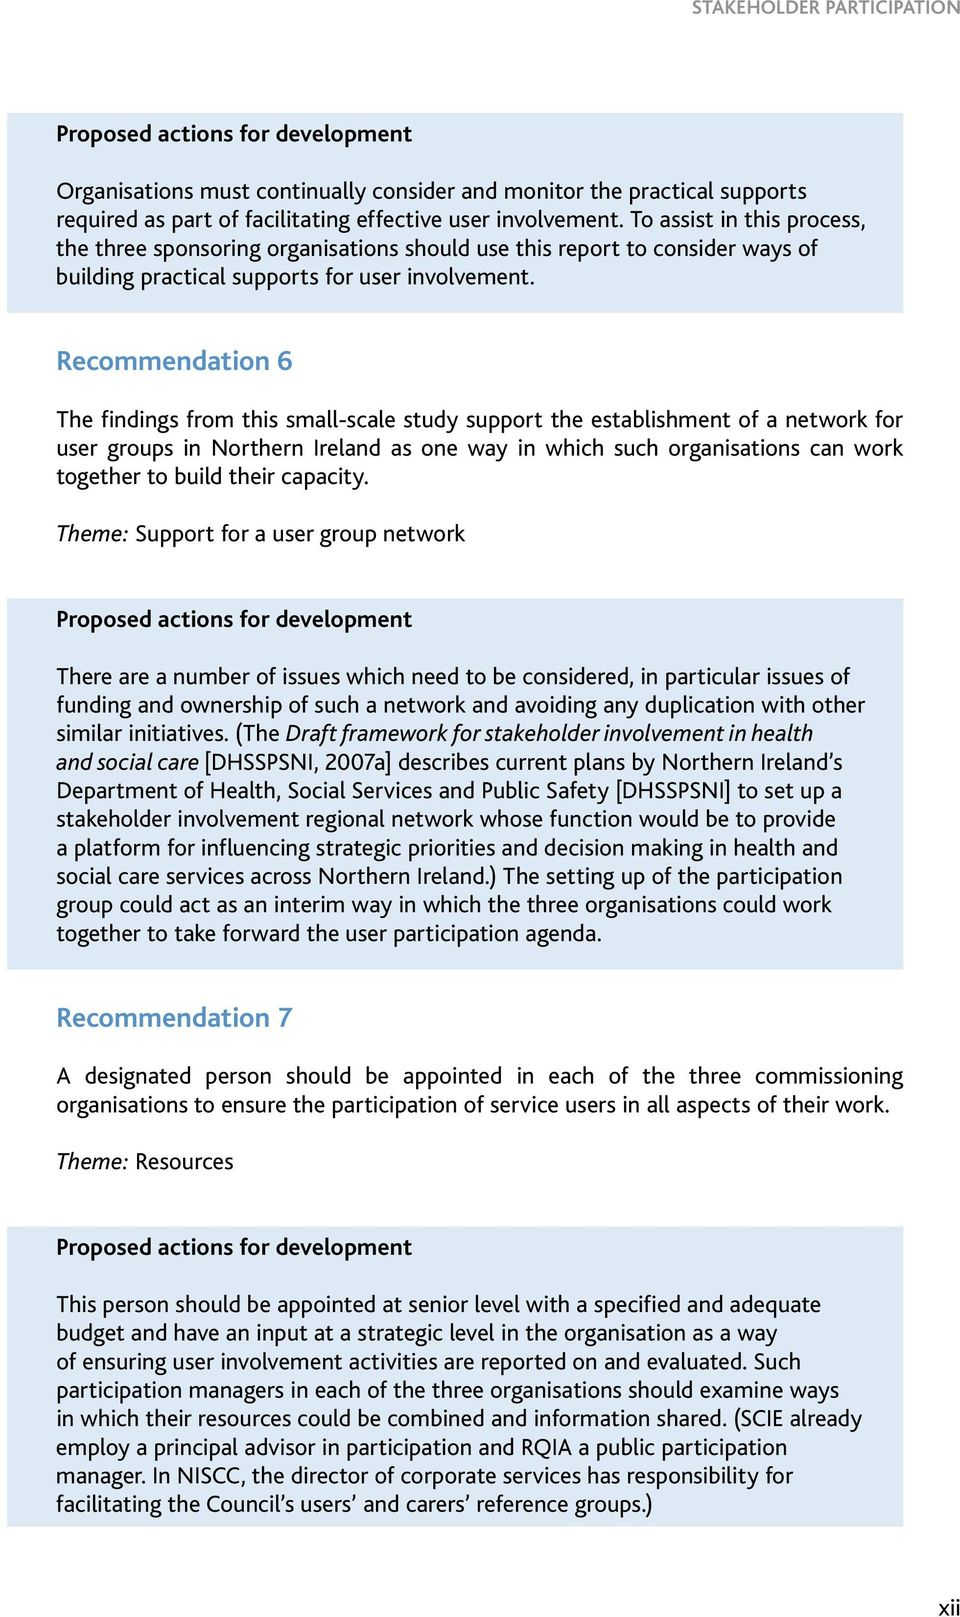 Recommendation 6 The findings from this small-scale study support the establishment of a network for user groups in Northern Ireland as one way in which such organisations can work together to build